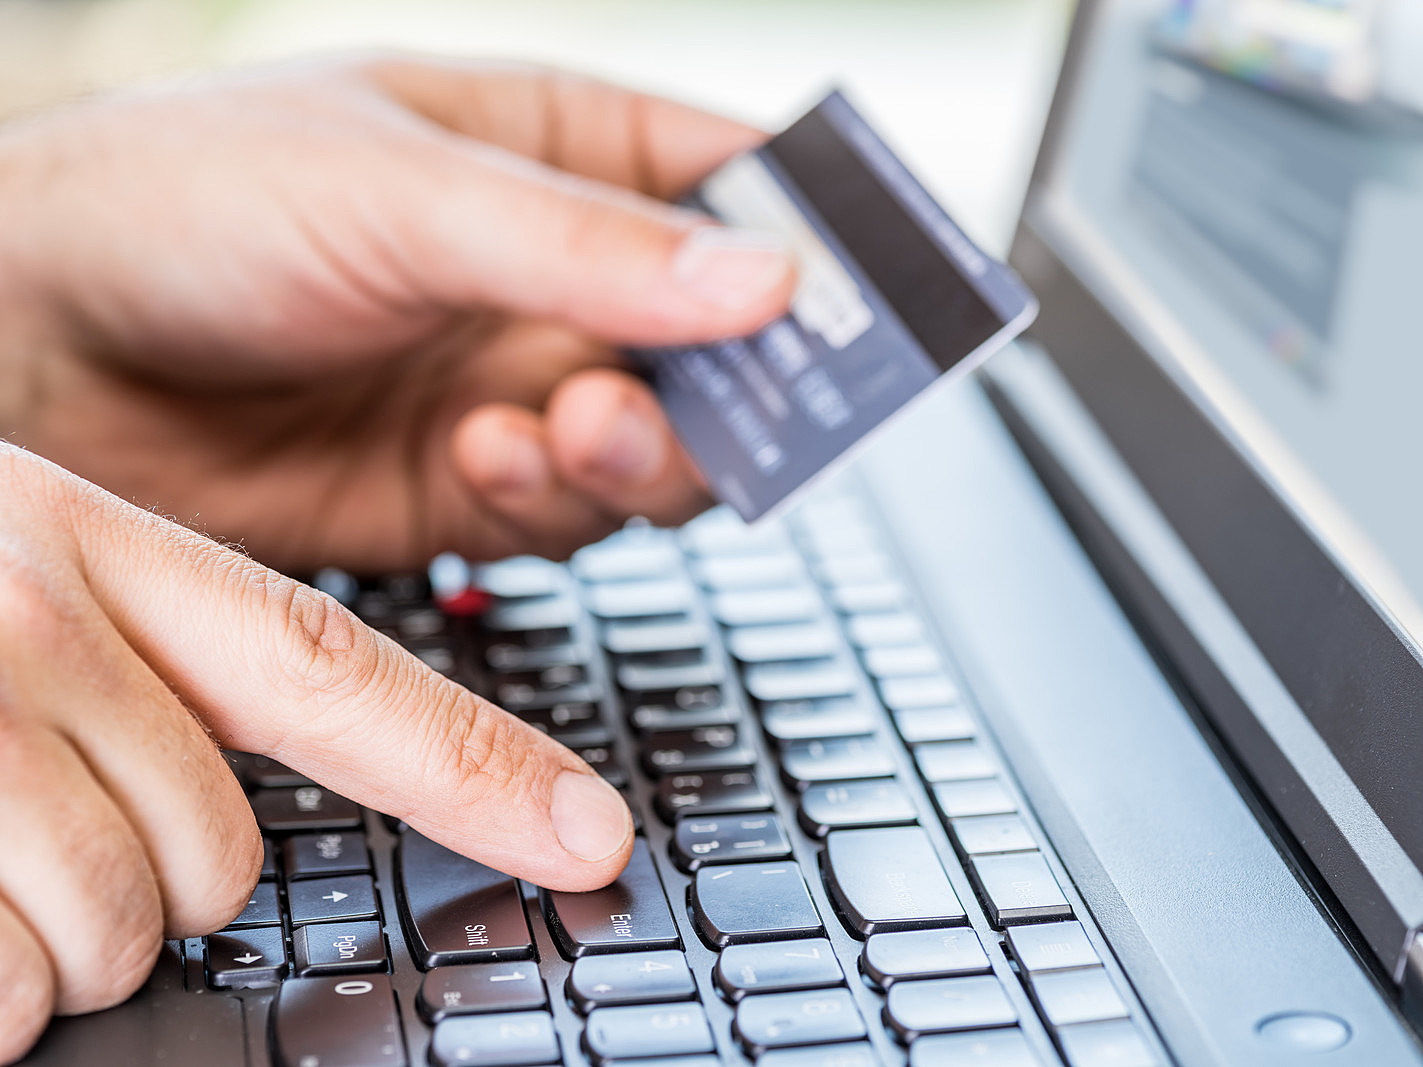 Online shopping using credit card and laptop.